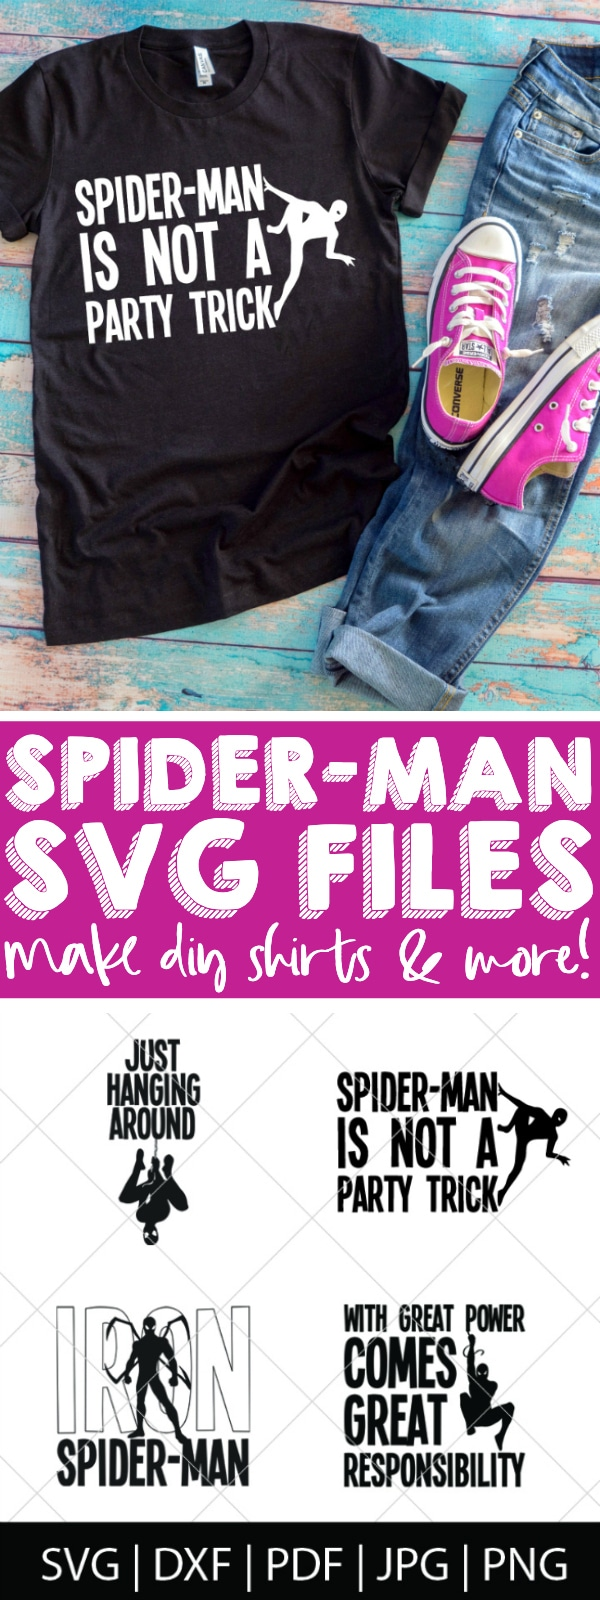 Make your own Spider-Man shirts or gifts with this Spider-Man SVG Bundle - We love our friendly neighborhood Spider-Man, so we're celebrating the newest movie with these superhero cut files! Perfect for making Spider-Man shirts, mugs, gifts and more! | THE LOVE NERDS #spiderman #avengerssvg #marvelsvg